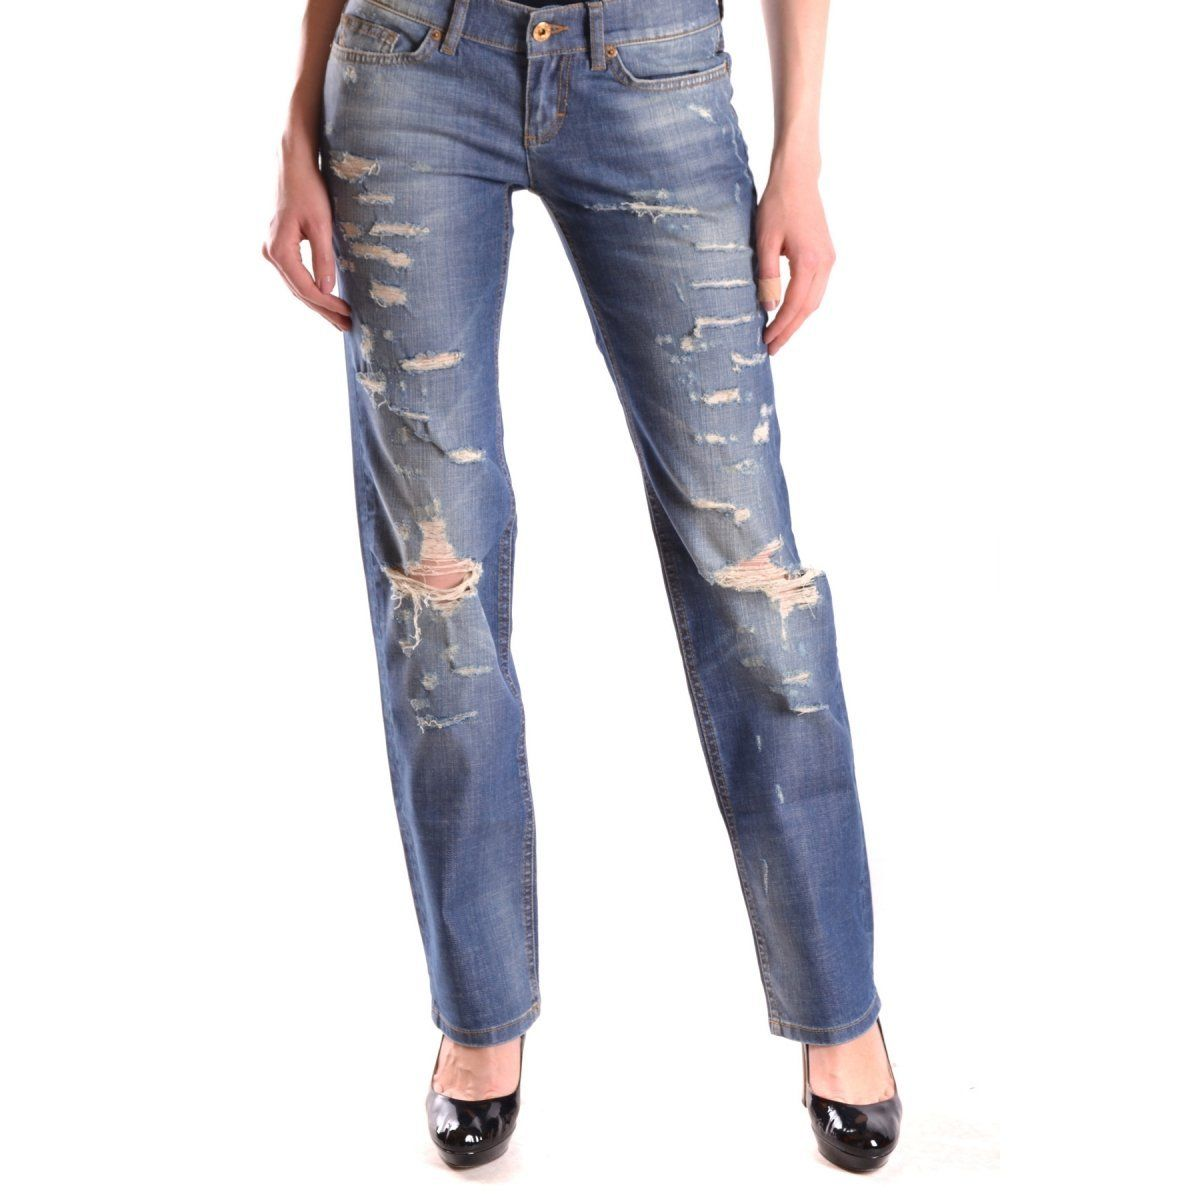 Jeans D&G Dolce & Gabbana. Terms New: with label Clothing Type jeans main Color blue season Spring / Summer Made In TURKEY Gender Woman Size: US Composition Cotton : 99%, Elastane : 1%.